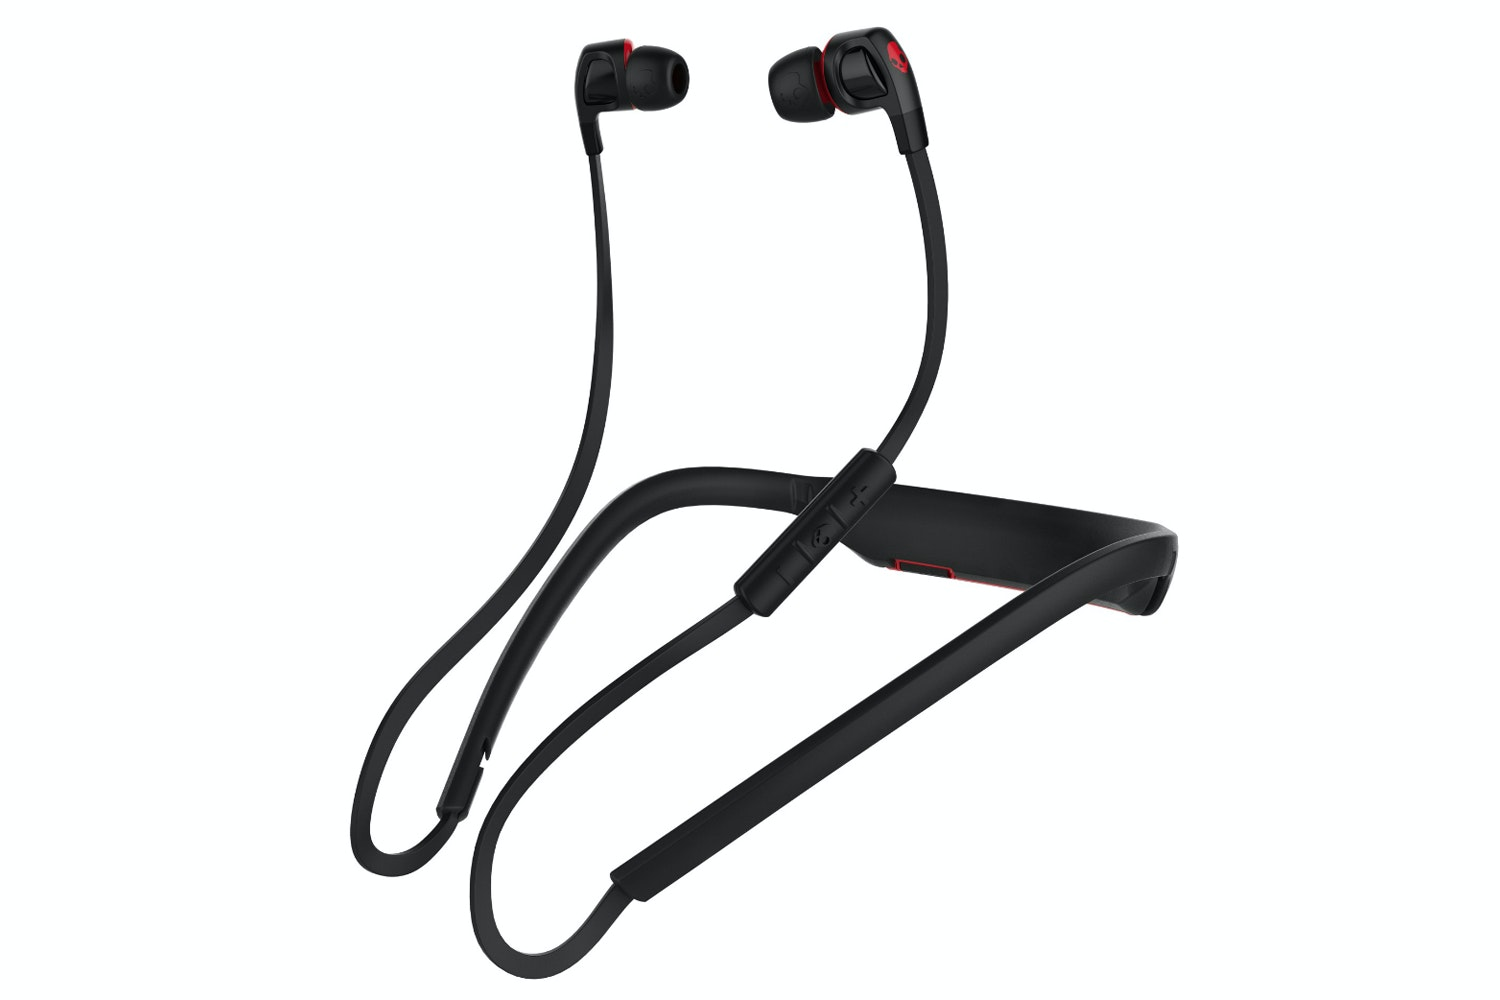 Skullcandy Smokin' Buds Wireless Earphones